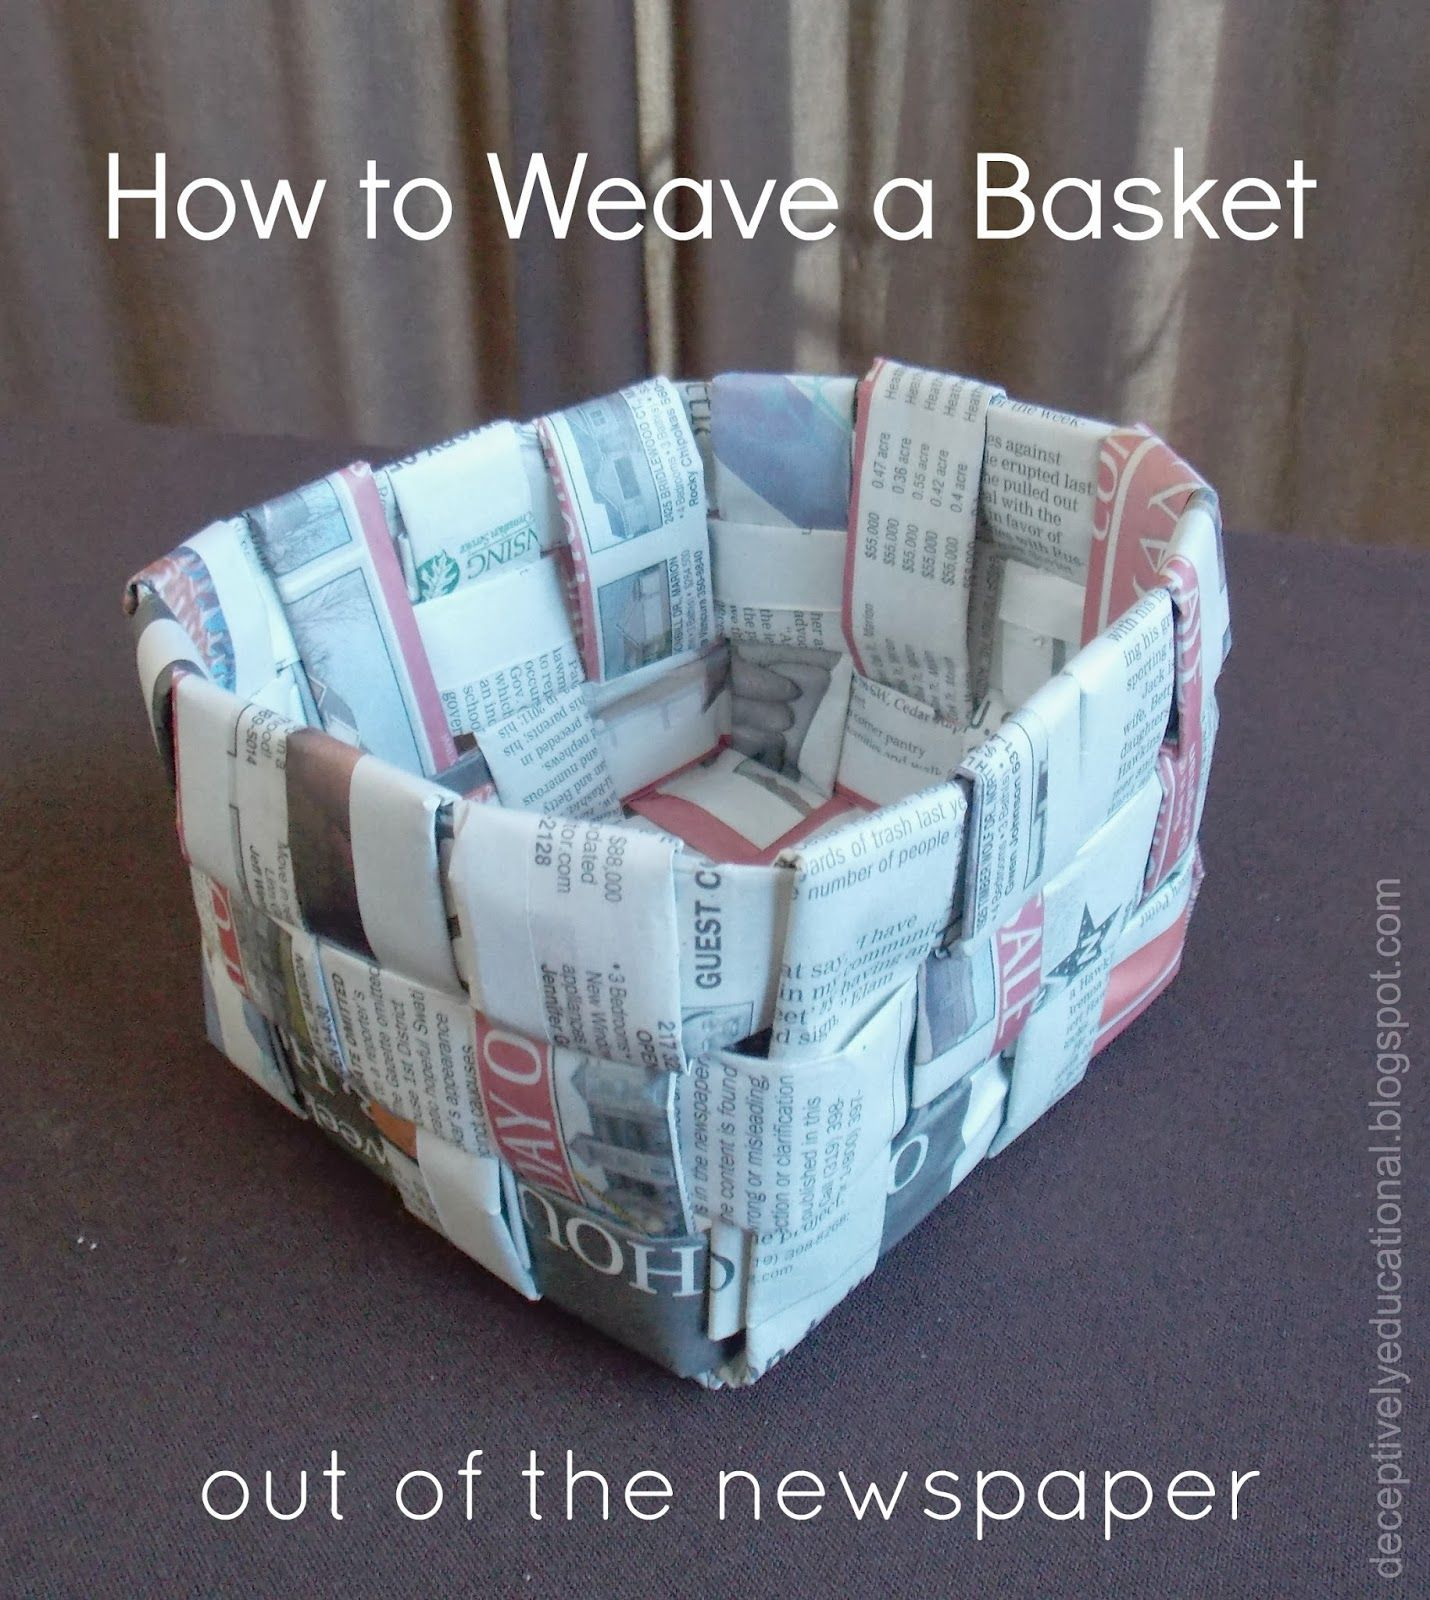 Basket Weaving Using Newspaper : How to weave a basket out of the newspaper